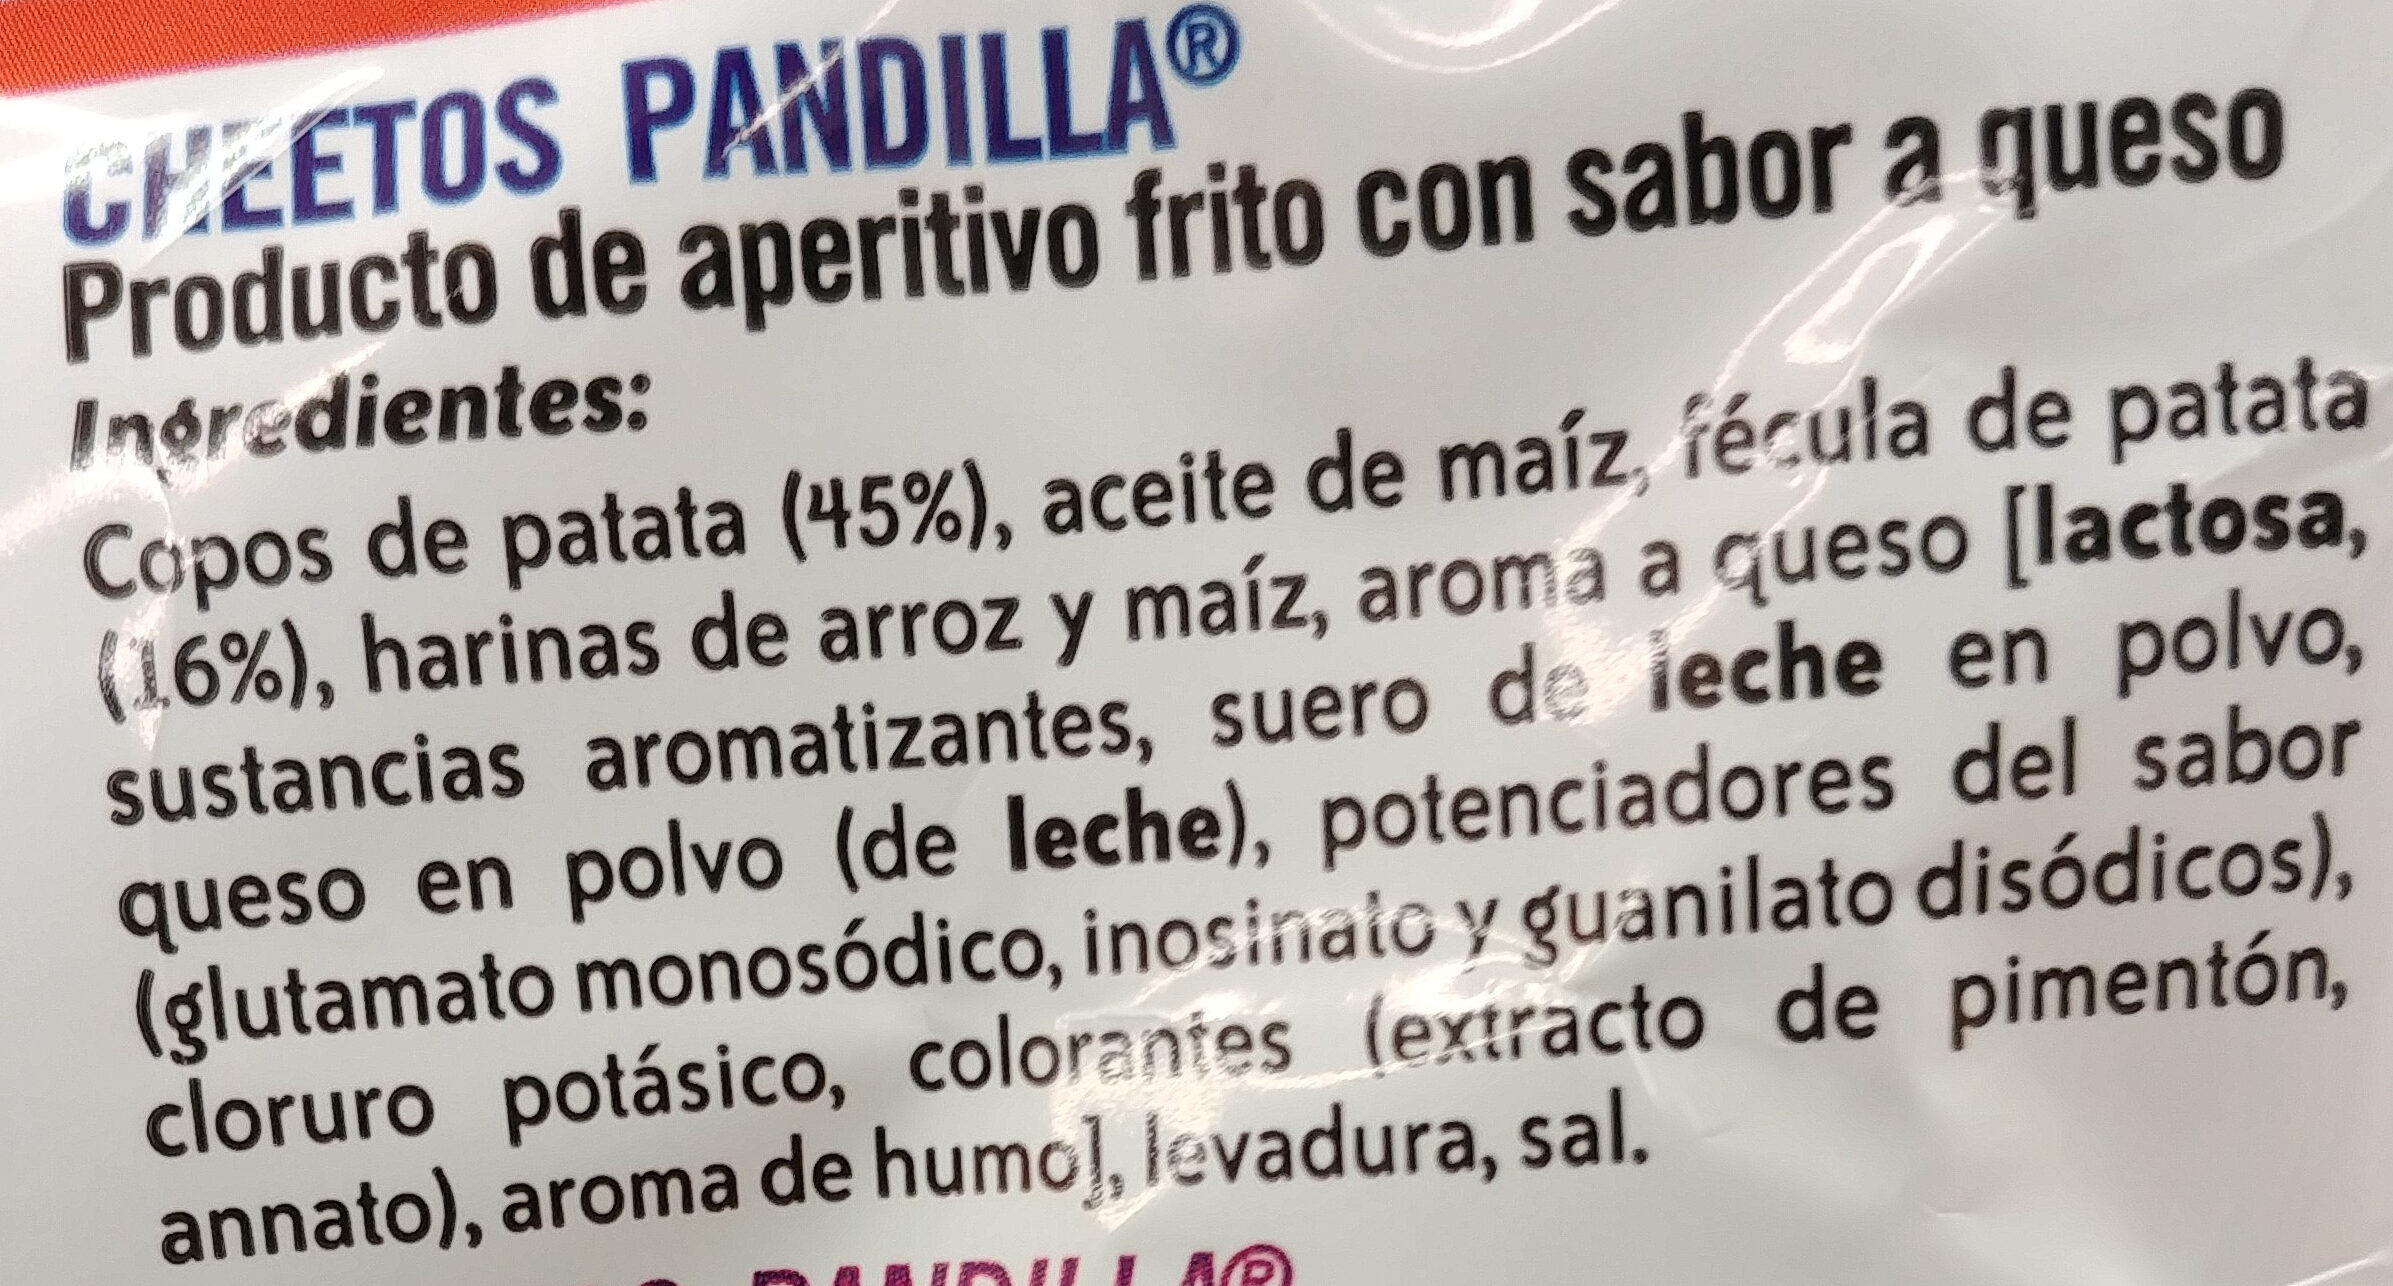 Snack pandilla sabor a queso sin gluten - Ingredients